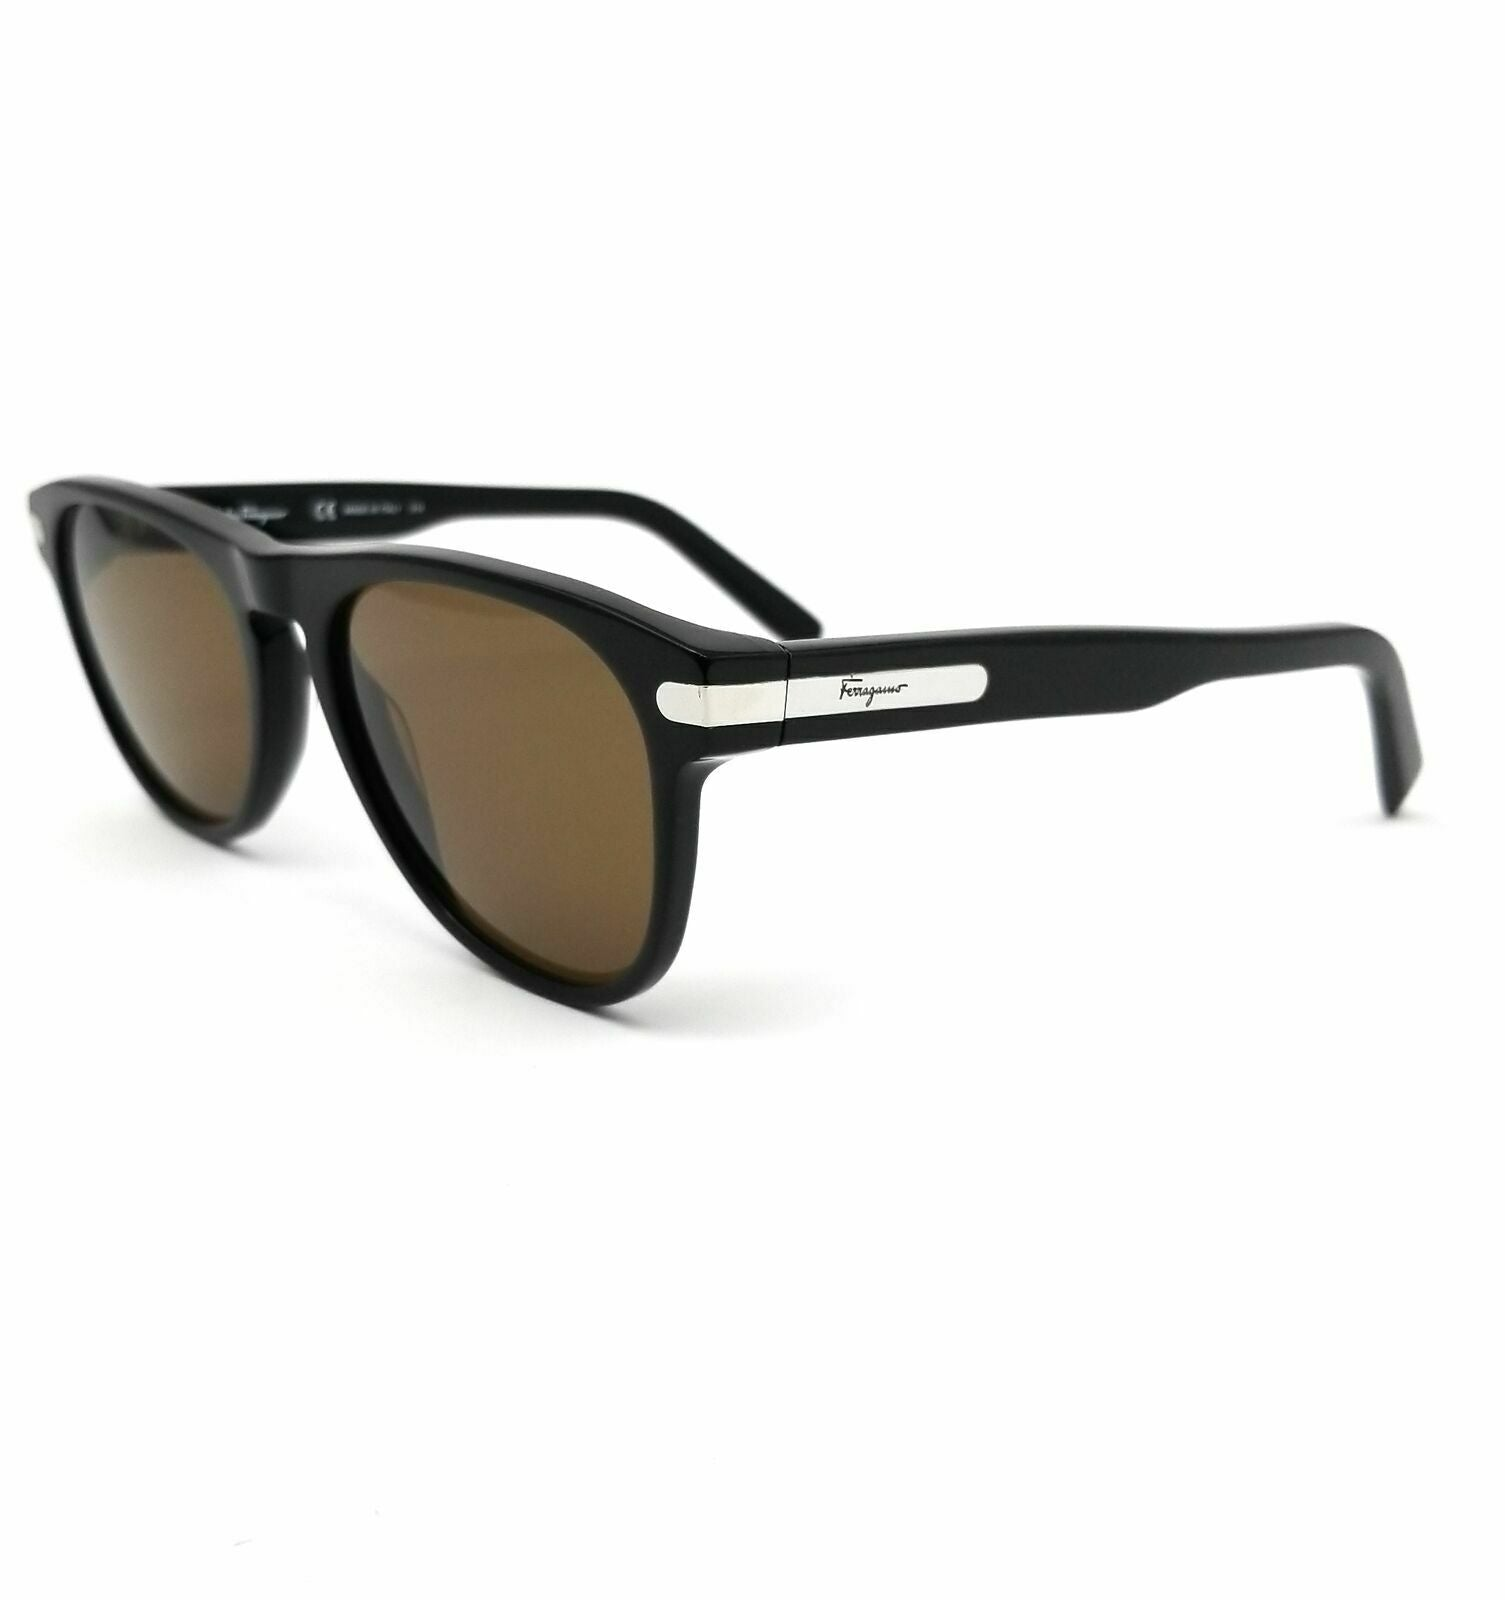 Salvatore Ferragamo Sunglasses SF916S 001 Black Modified Rectangle Men 55x19x140 - Mydesigneroptic